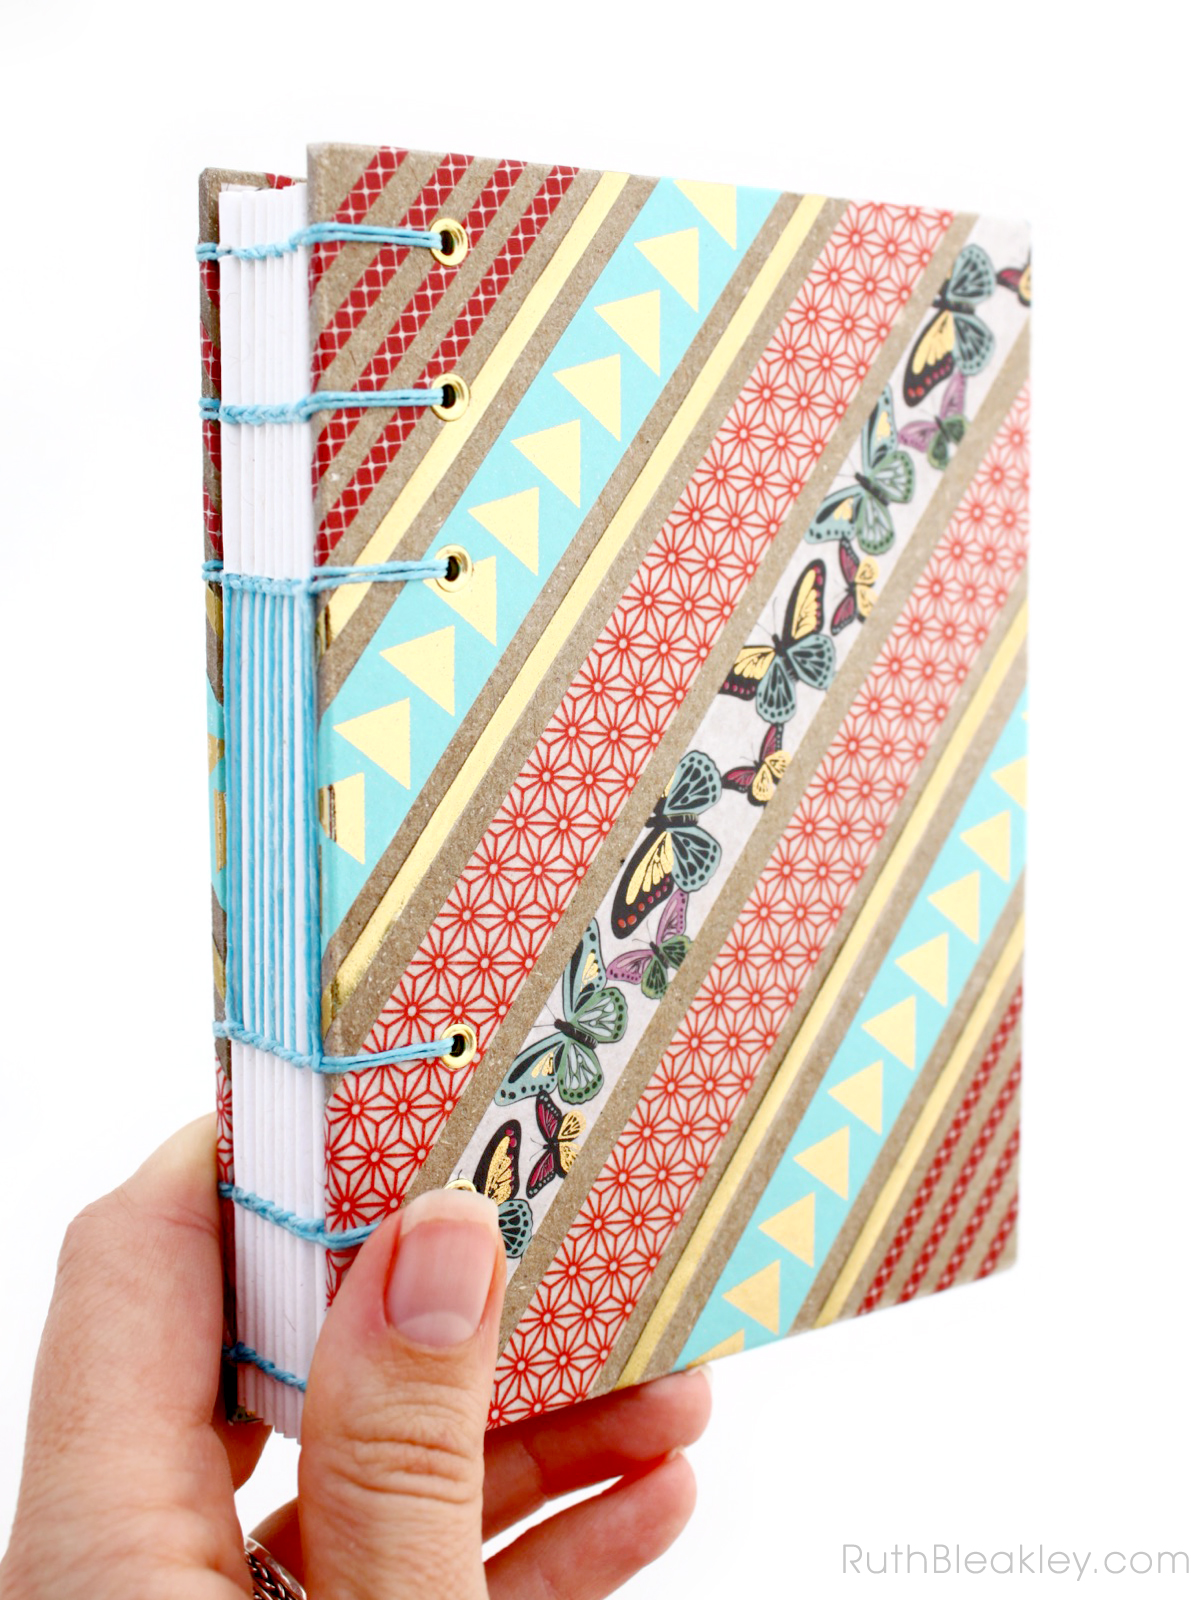 Butterfly Washi Tape Journal handmade by Ruth Bleakley - 1